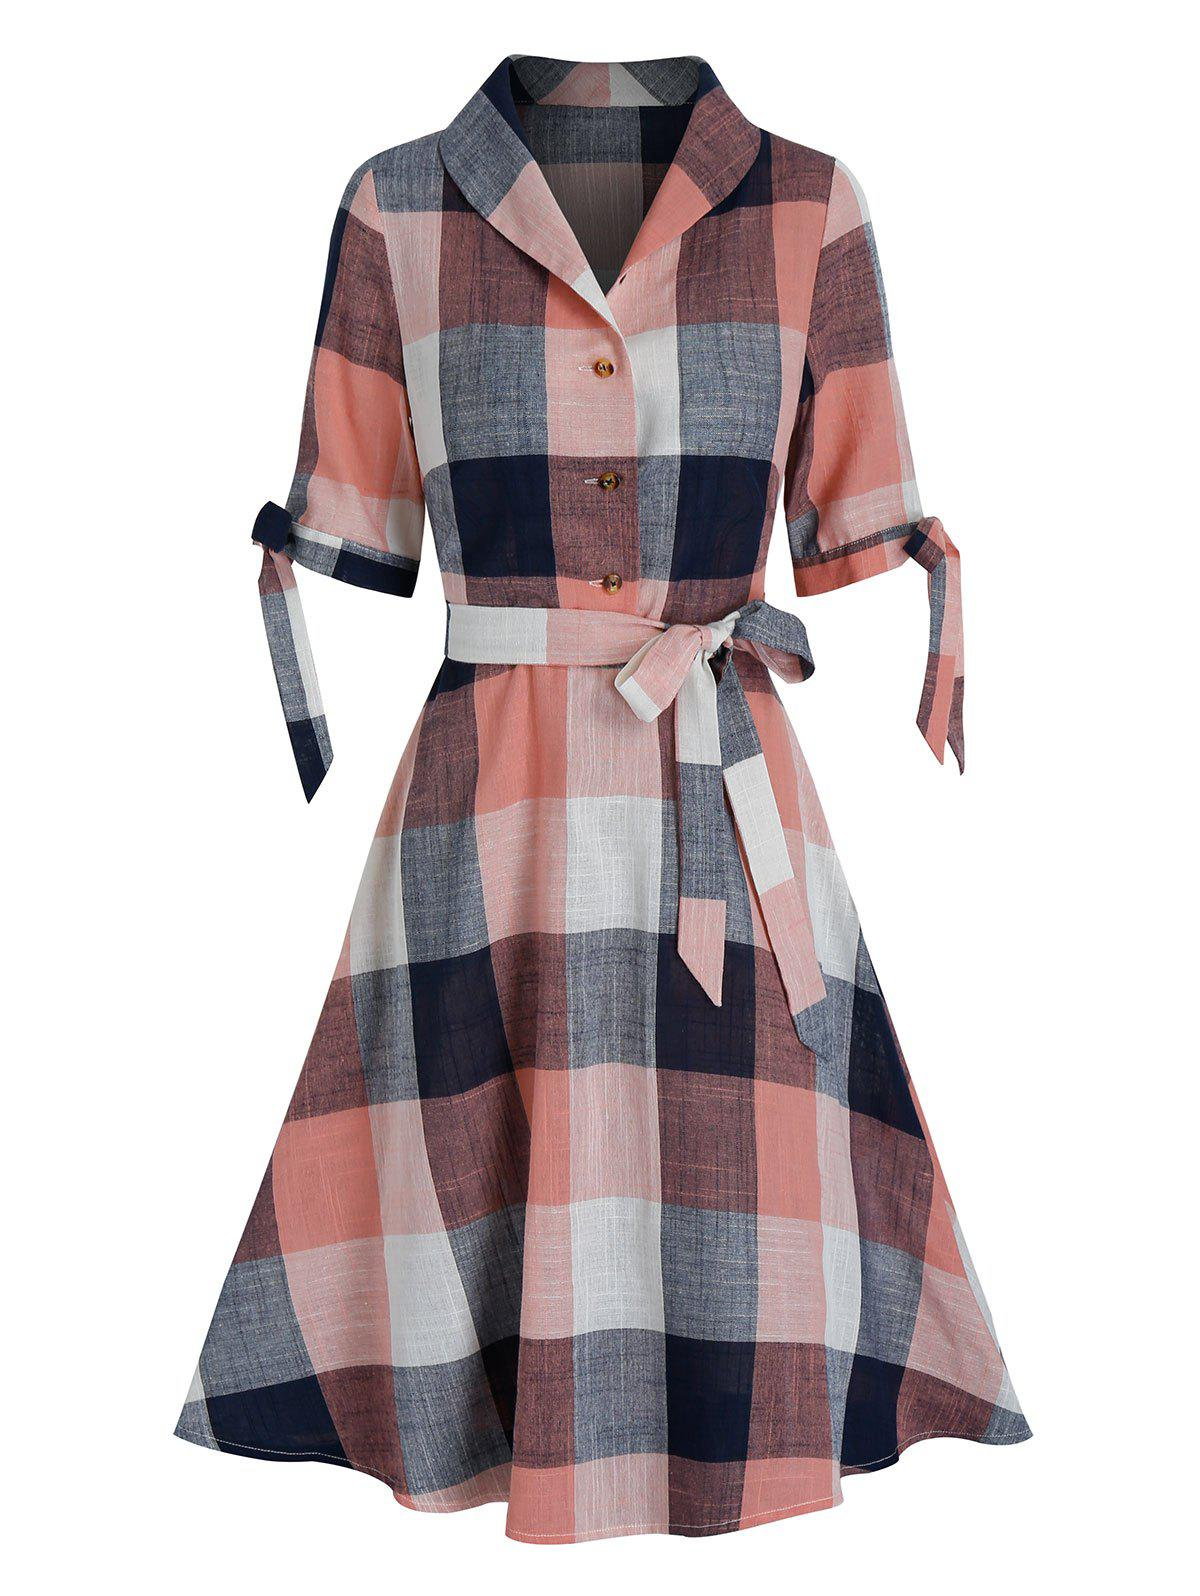 Plaid Printed Lace Up Sleeve Shirt Dress - ROSE M